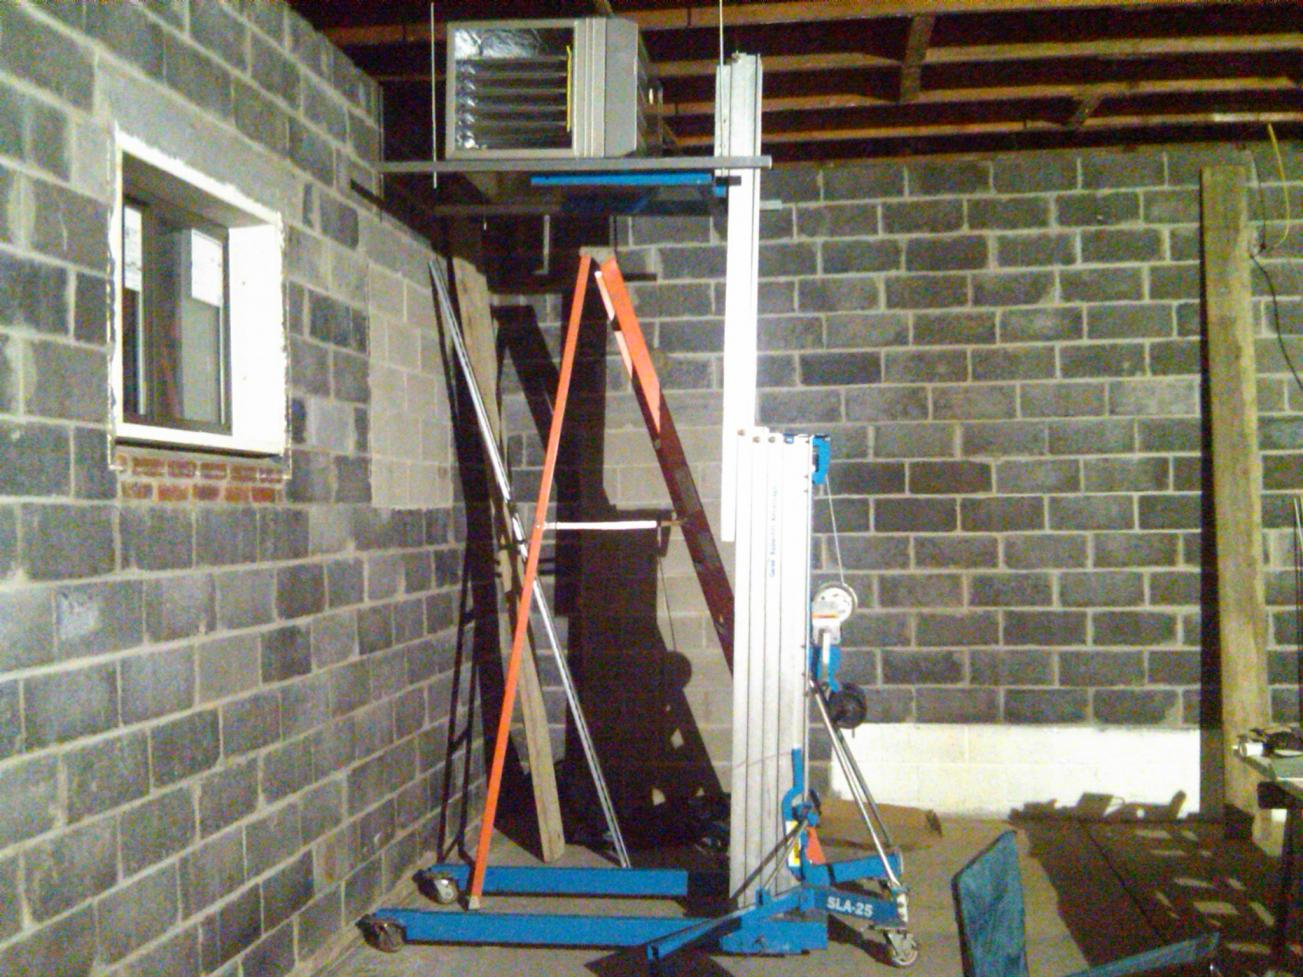 Venting Furnace Through Wall